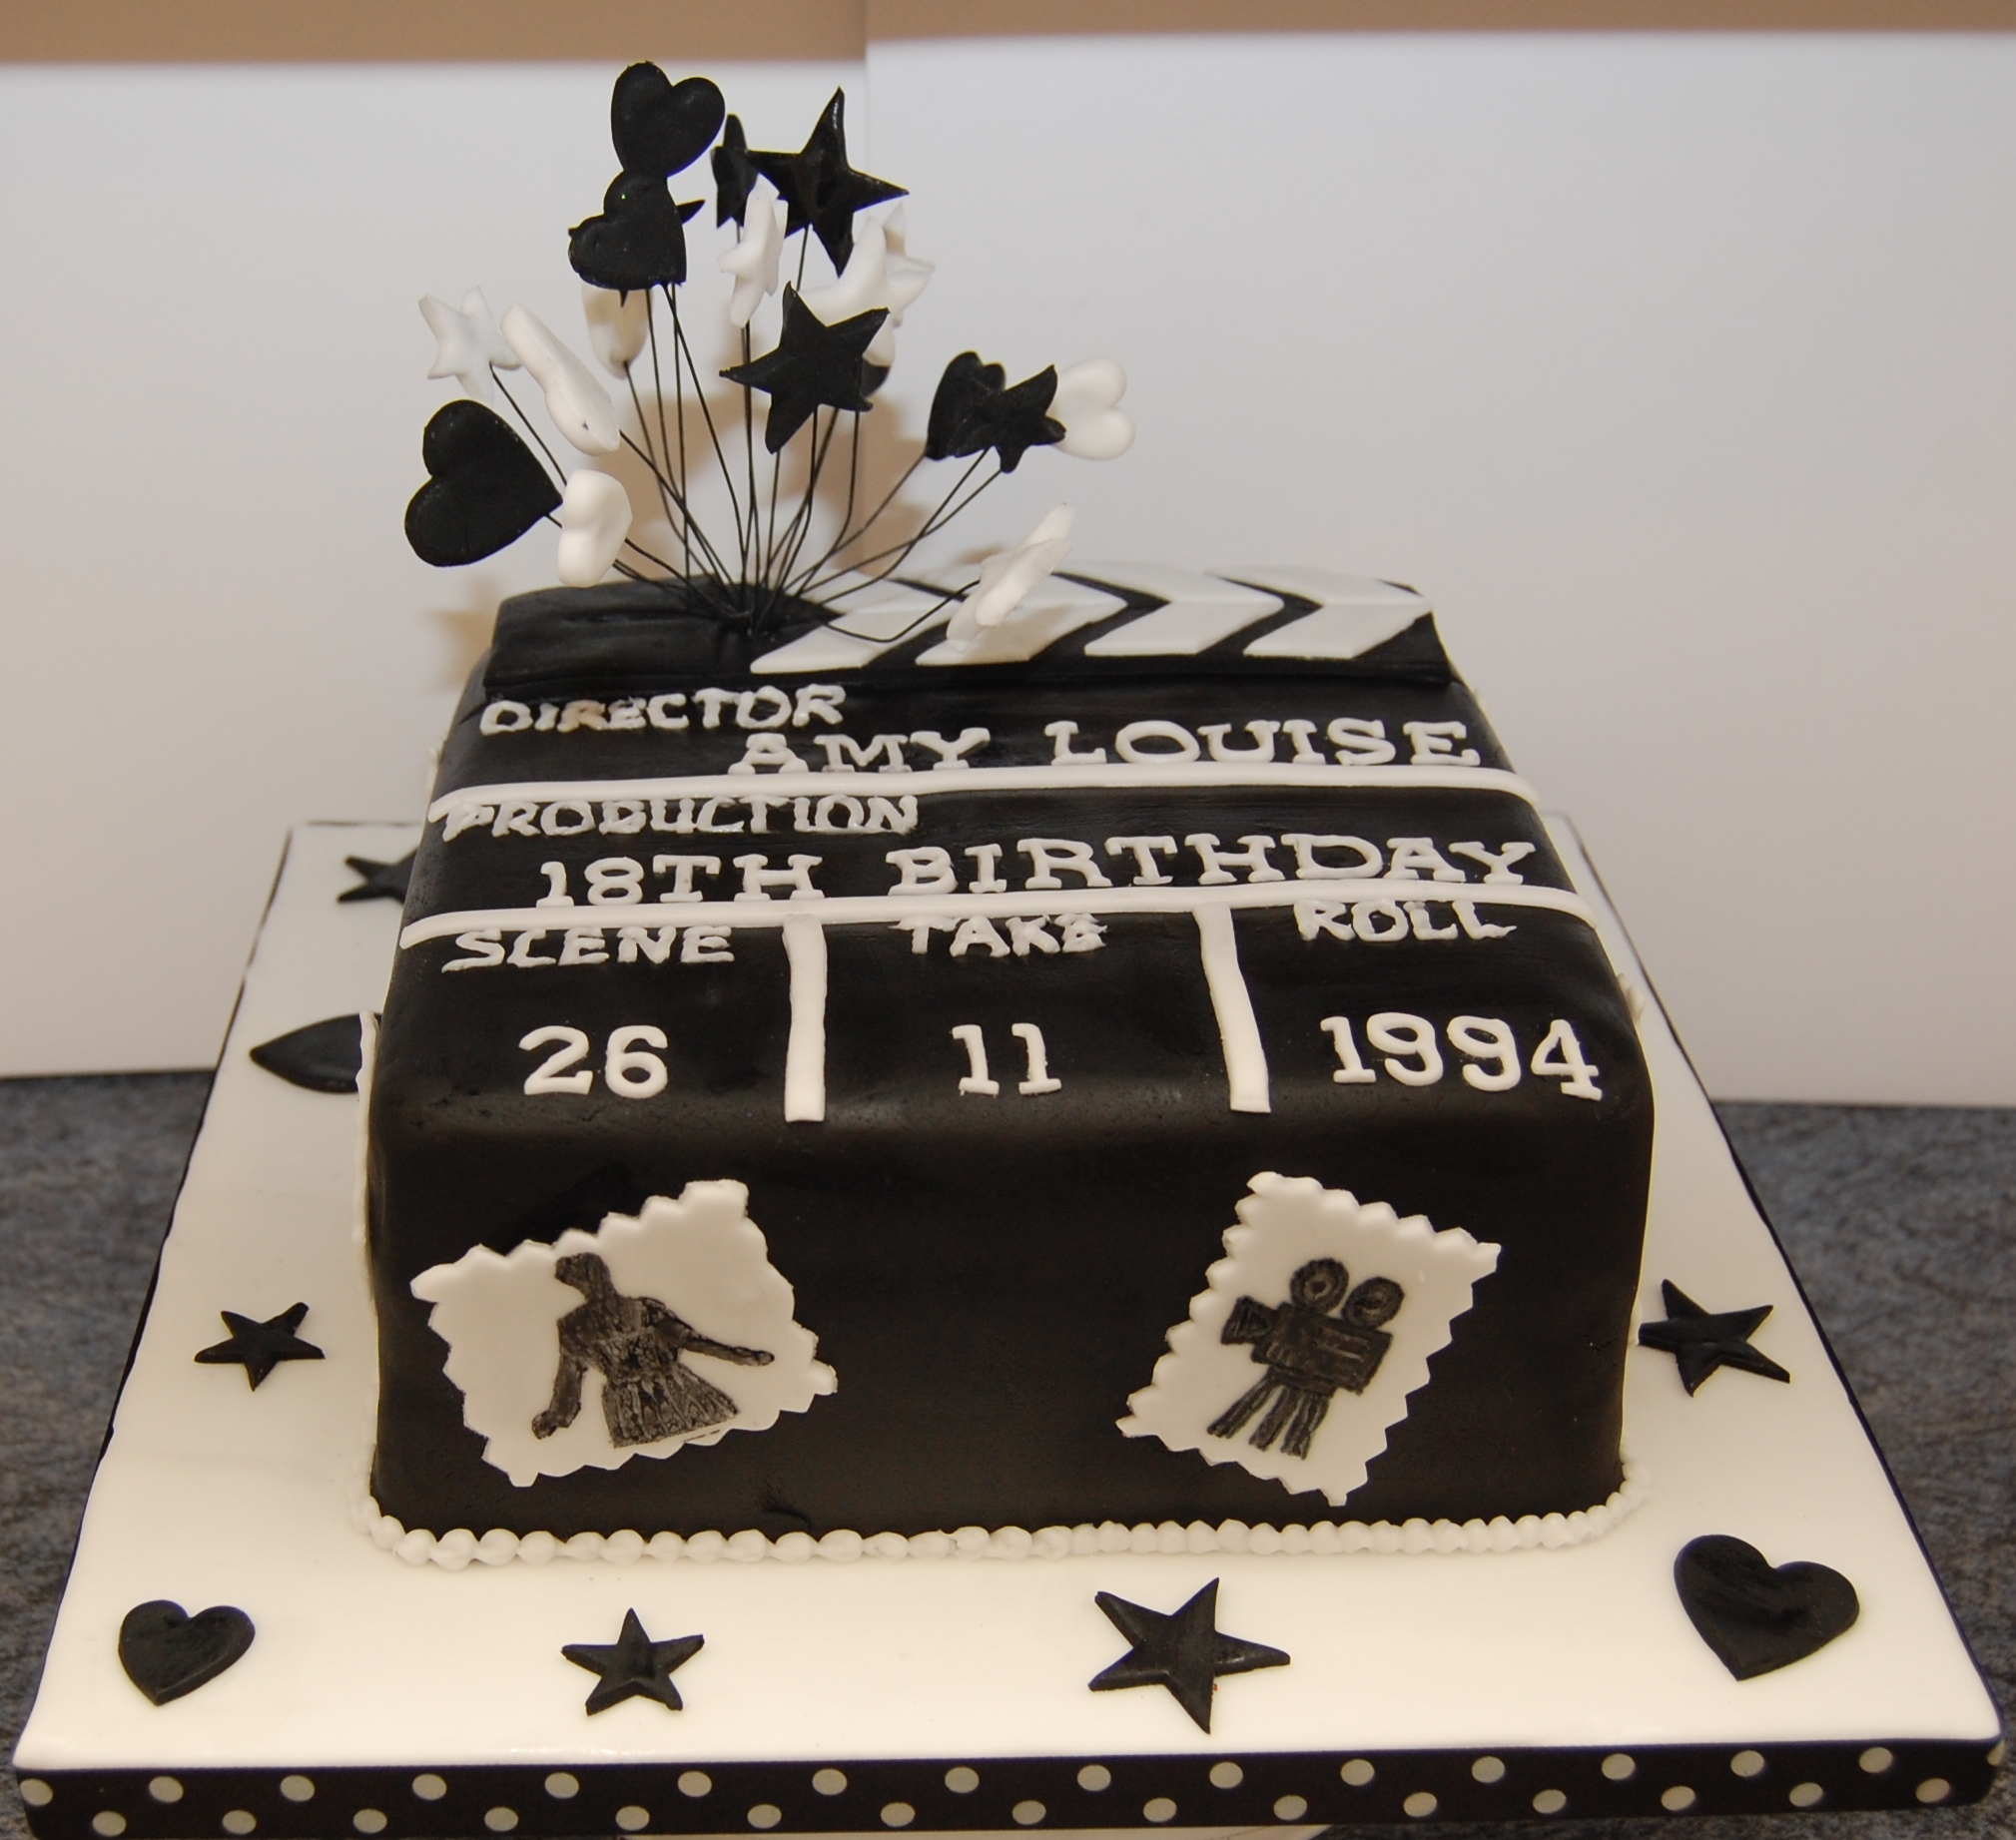 A clapper board birthday cake for a 18th birthday celebration amys 18th birthday cake clapperboard black and white icing stars hearts and move theme 2 publicscrutiny Gallery